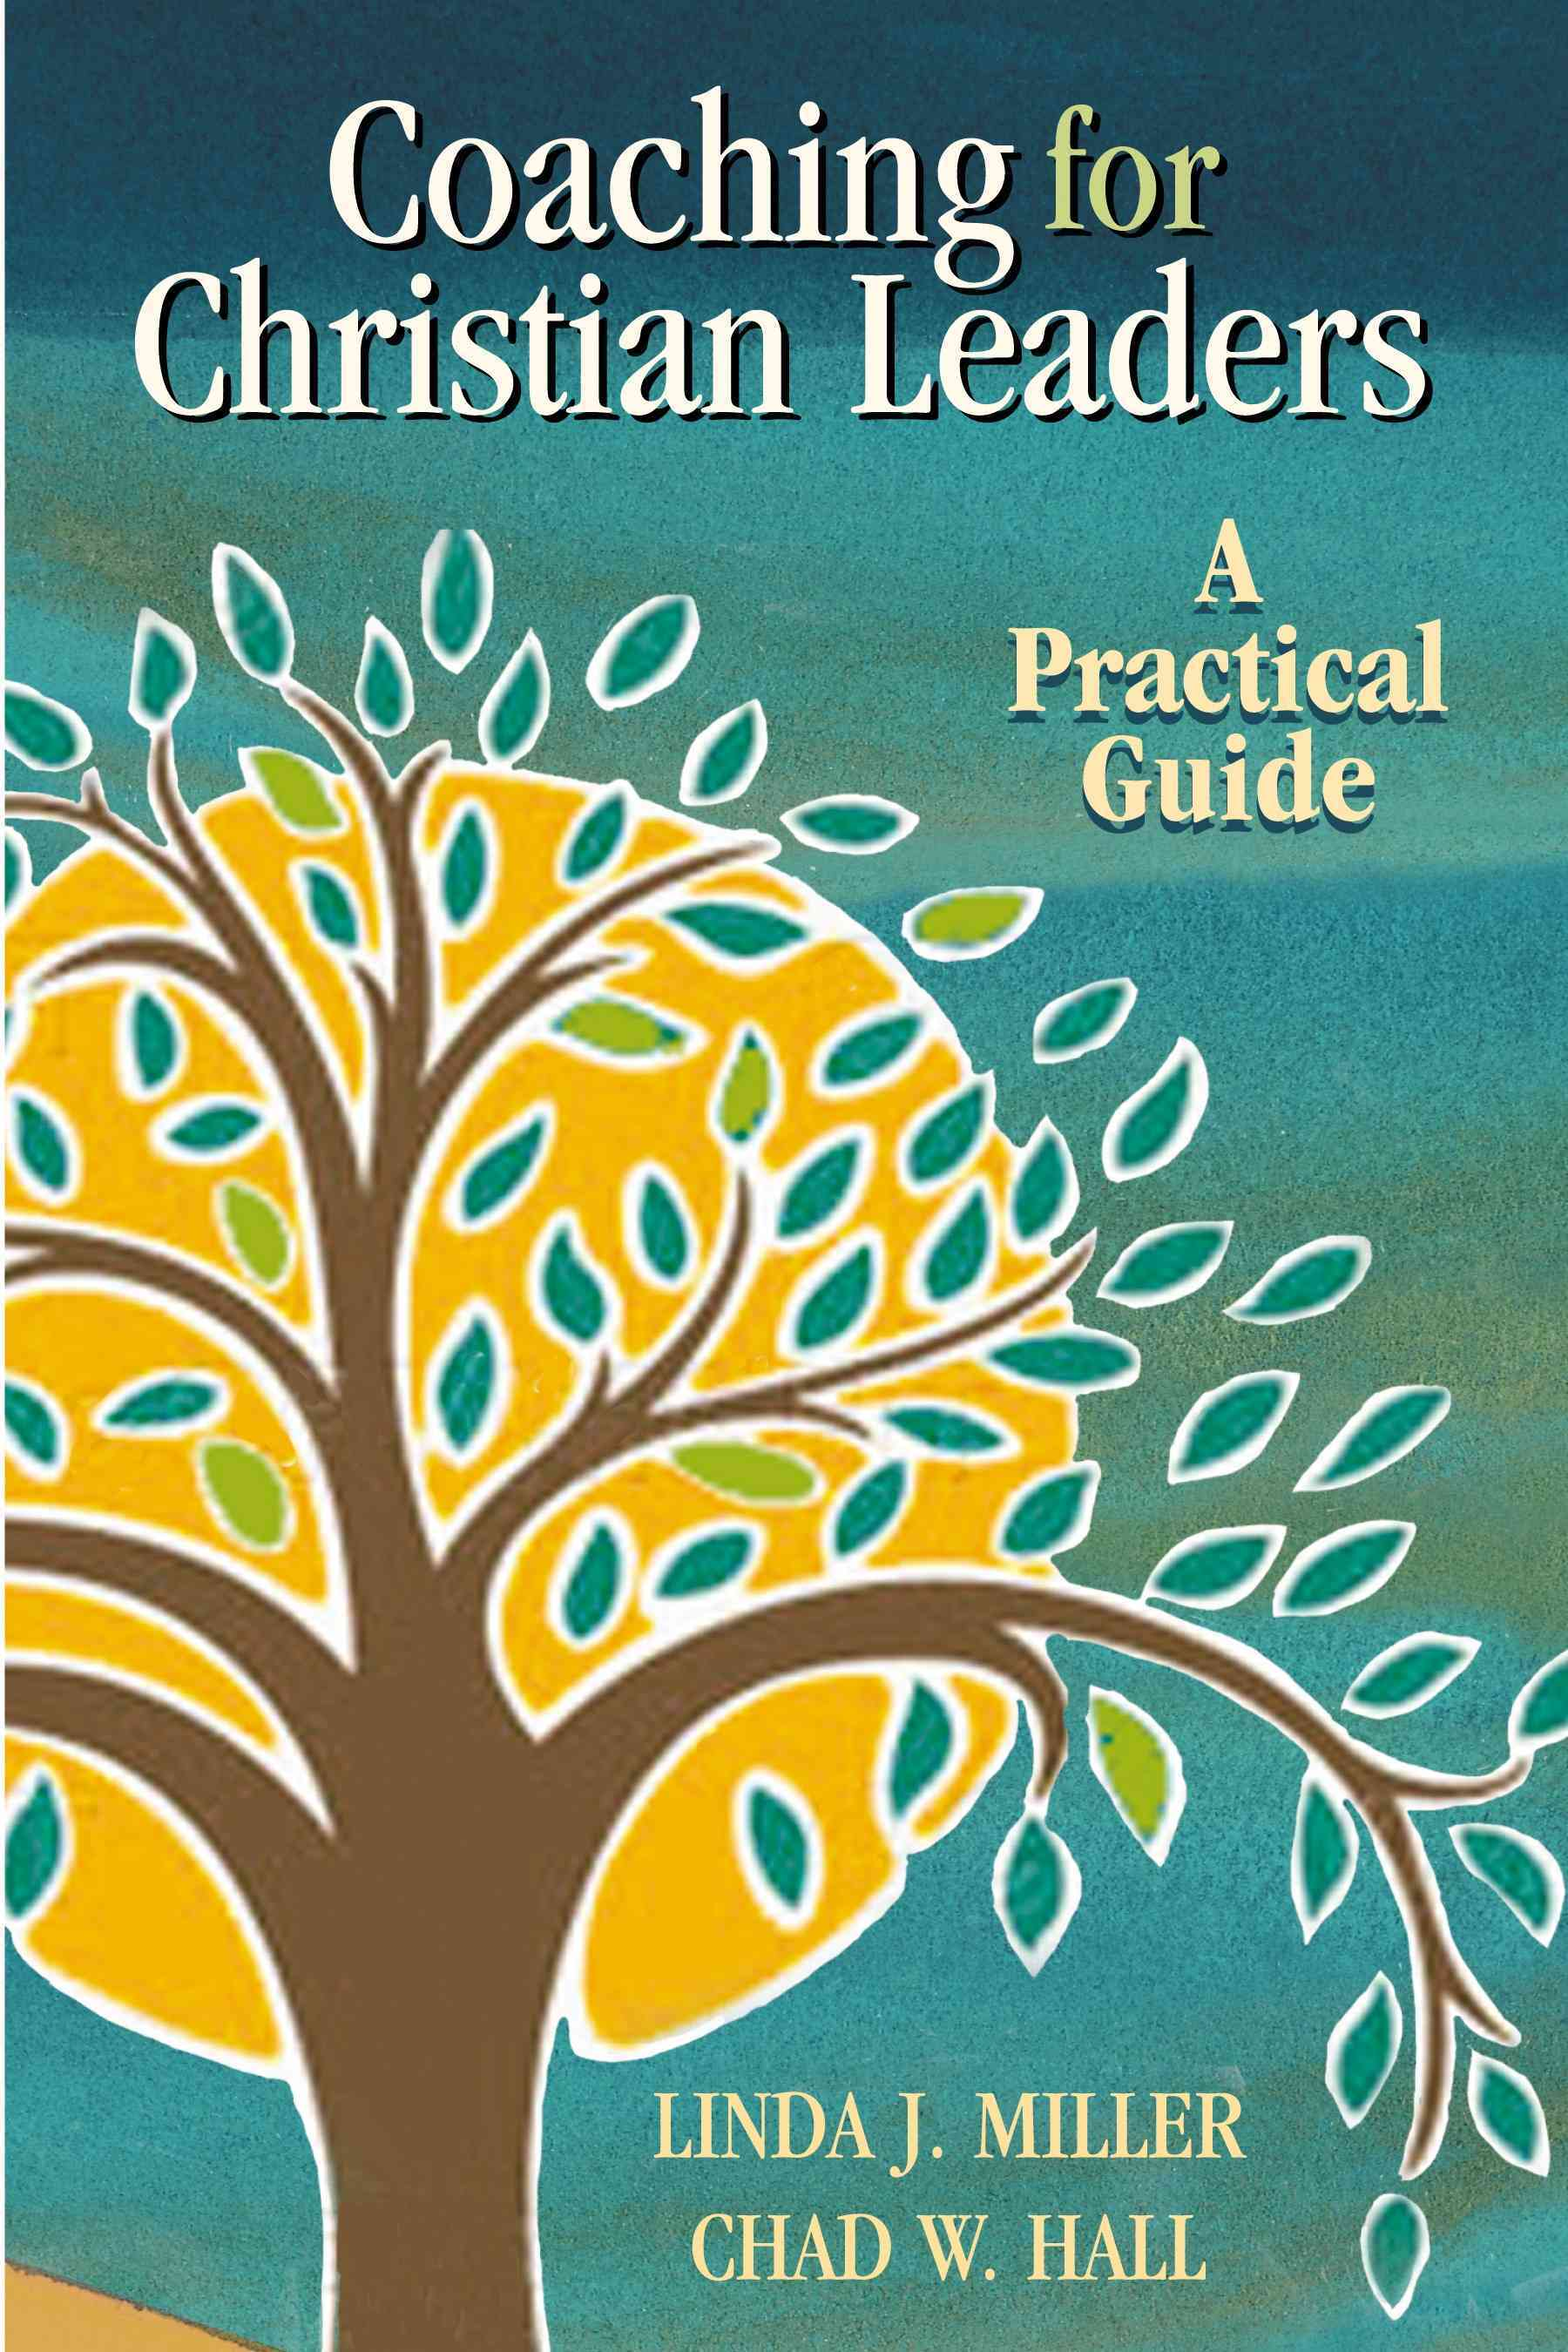 Coaching for Christian Leaders: A Practical Guide (Paperback)